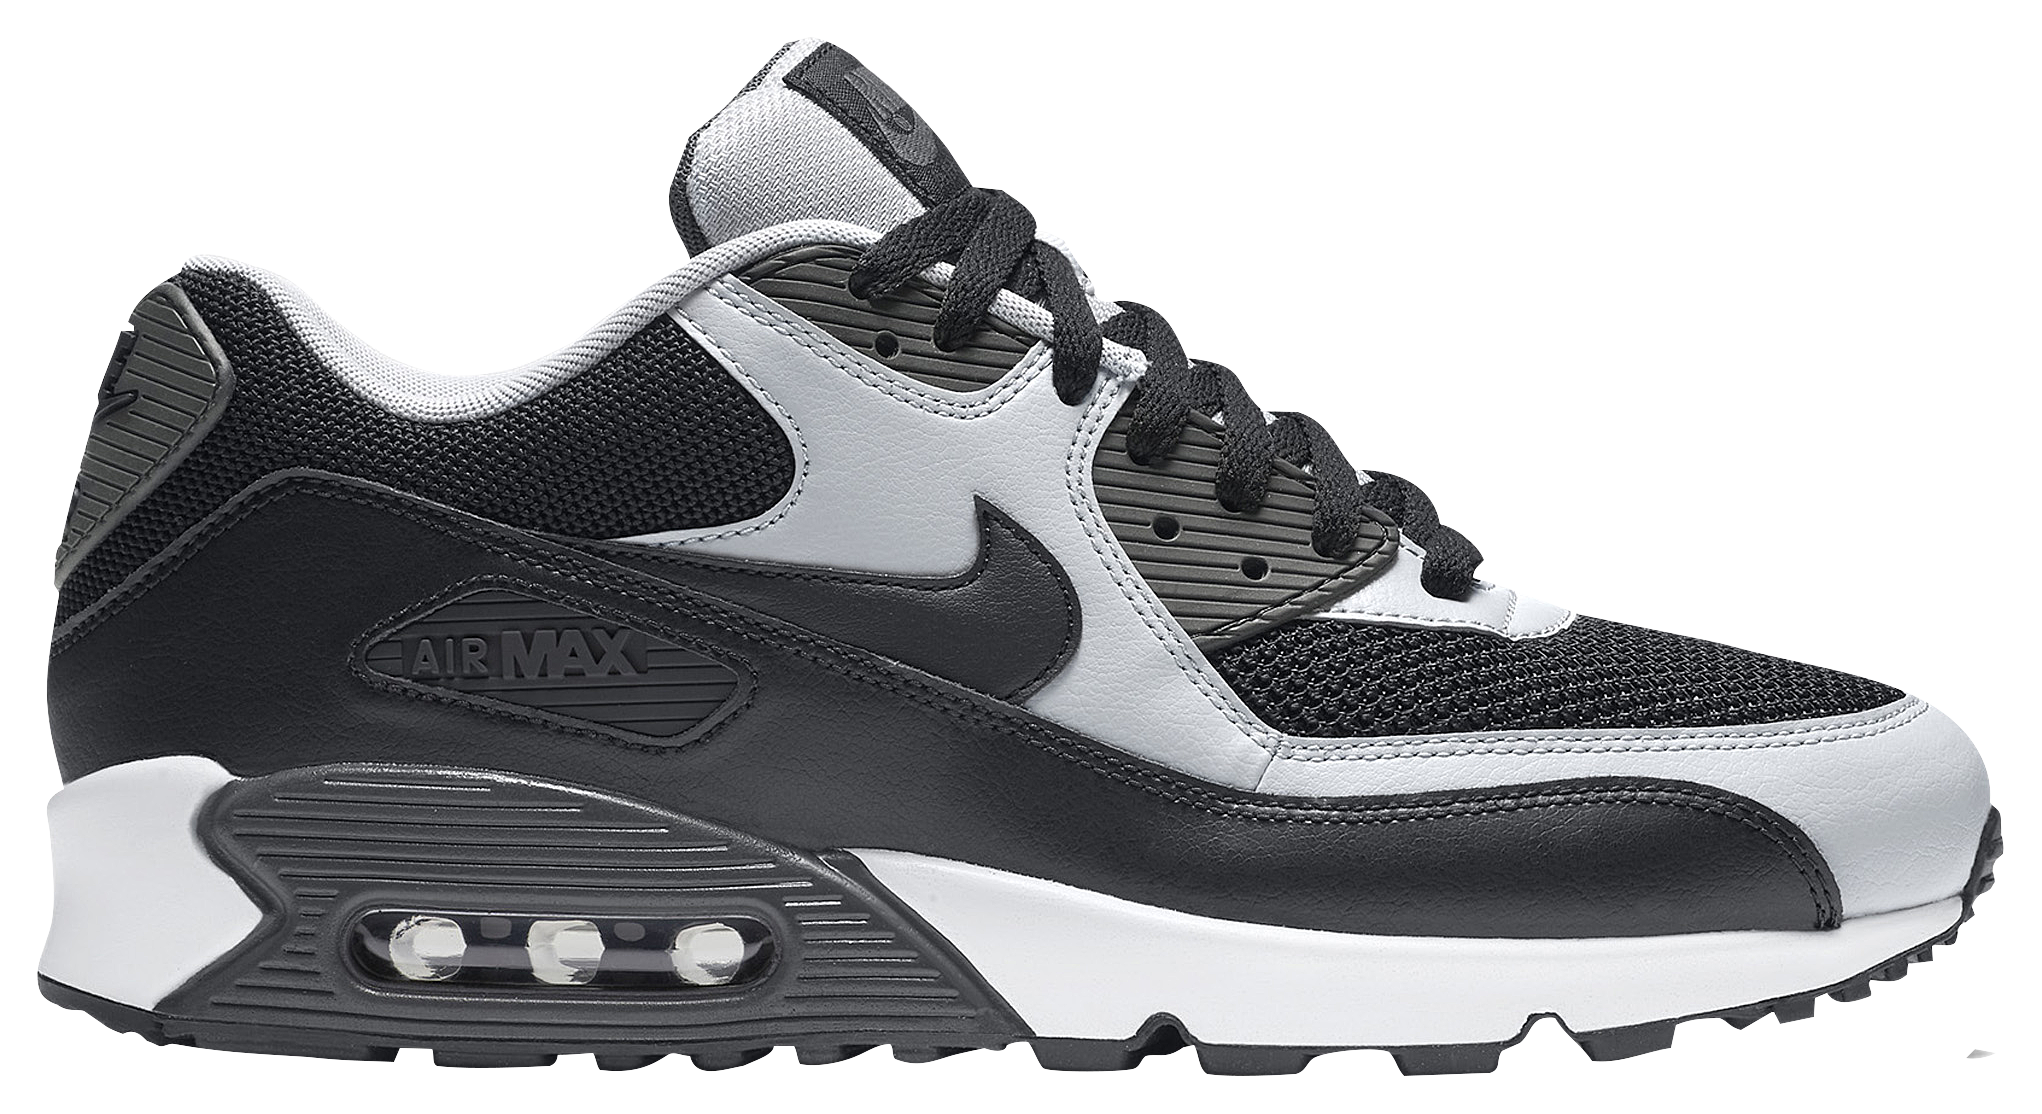 978407514919c nike air max black with white and gray